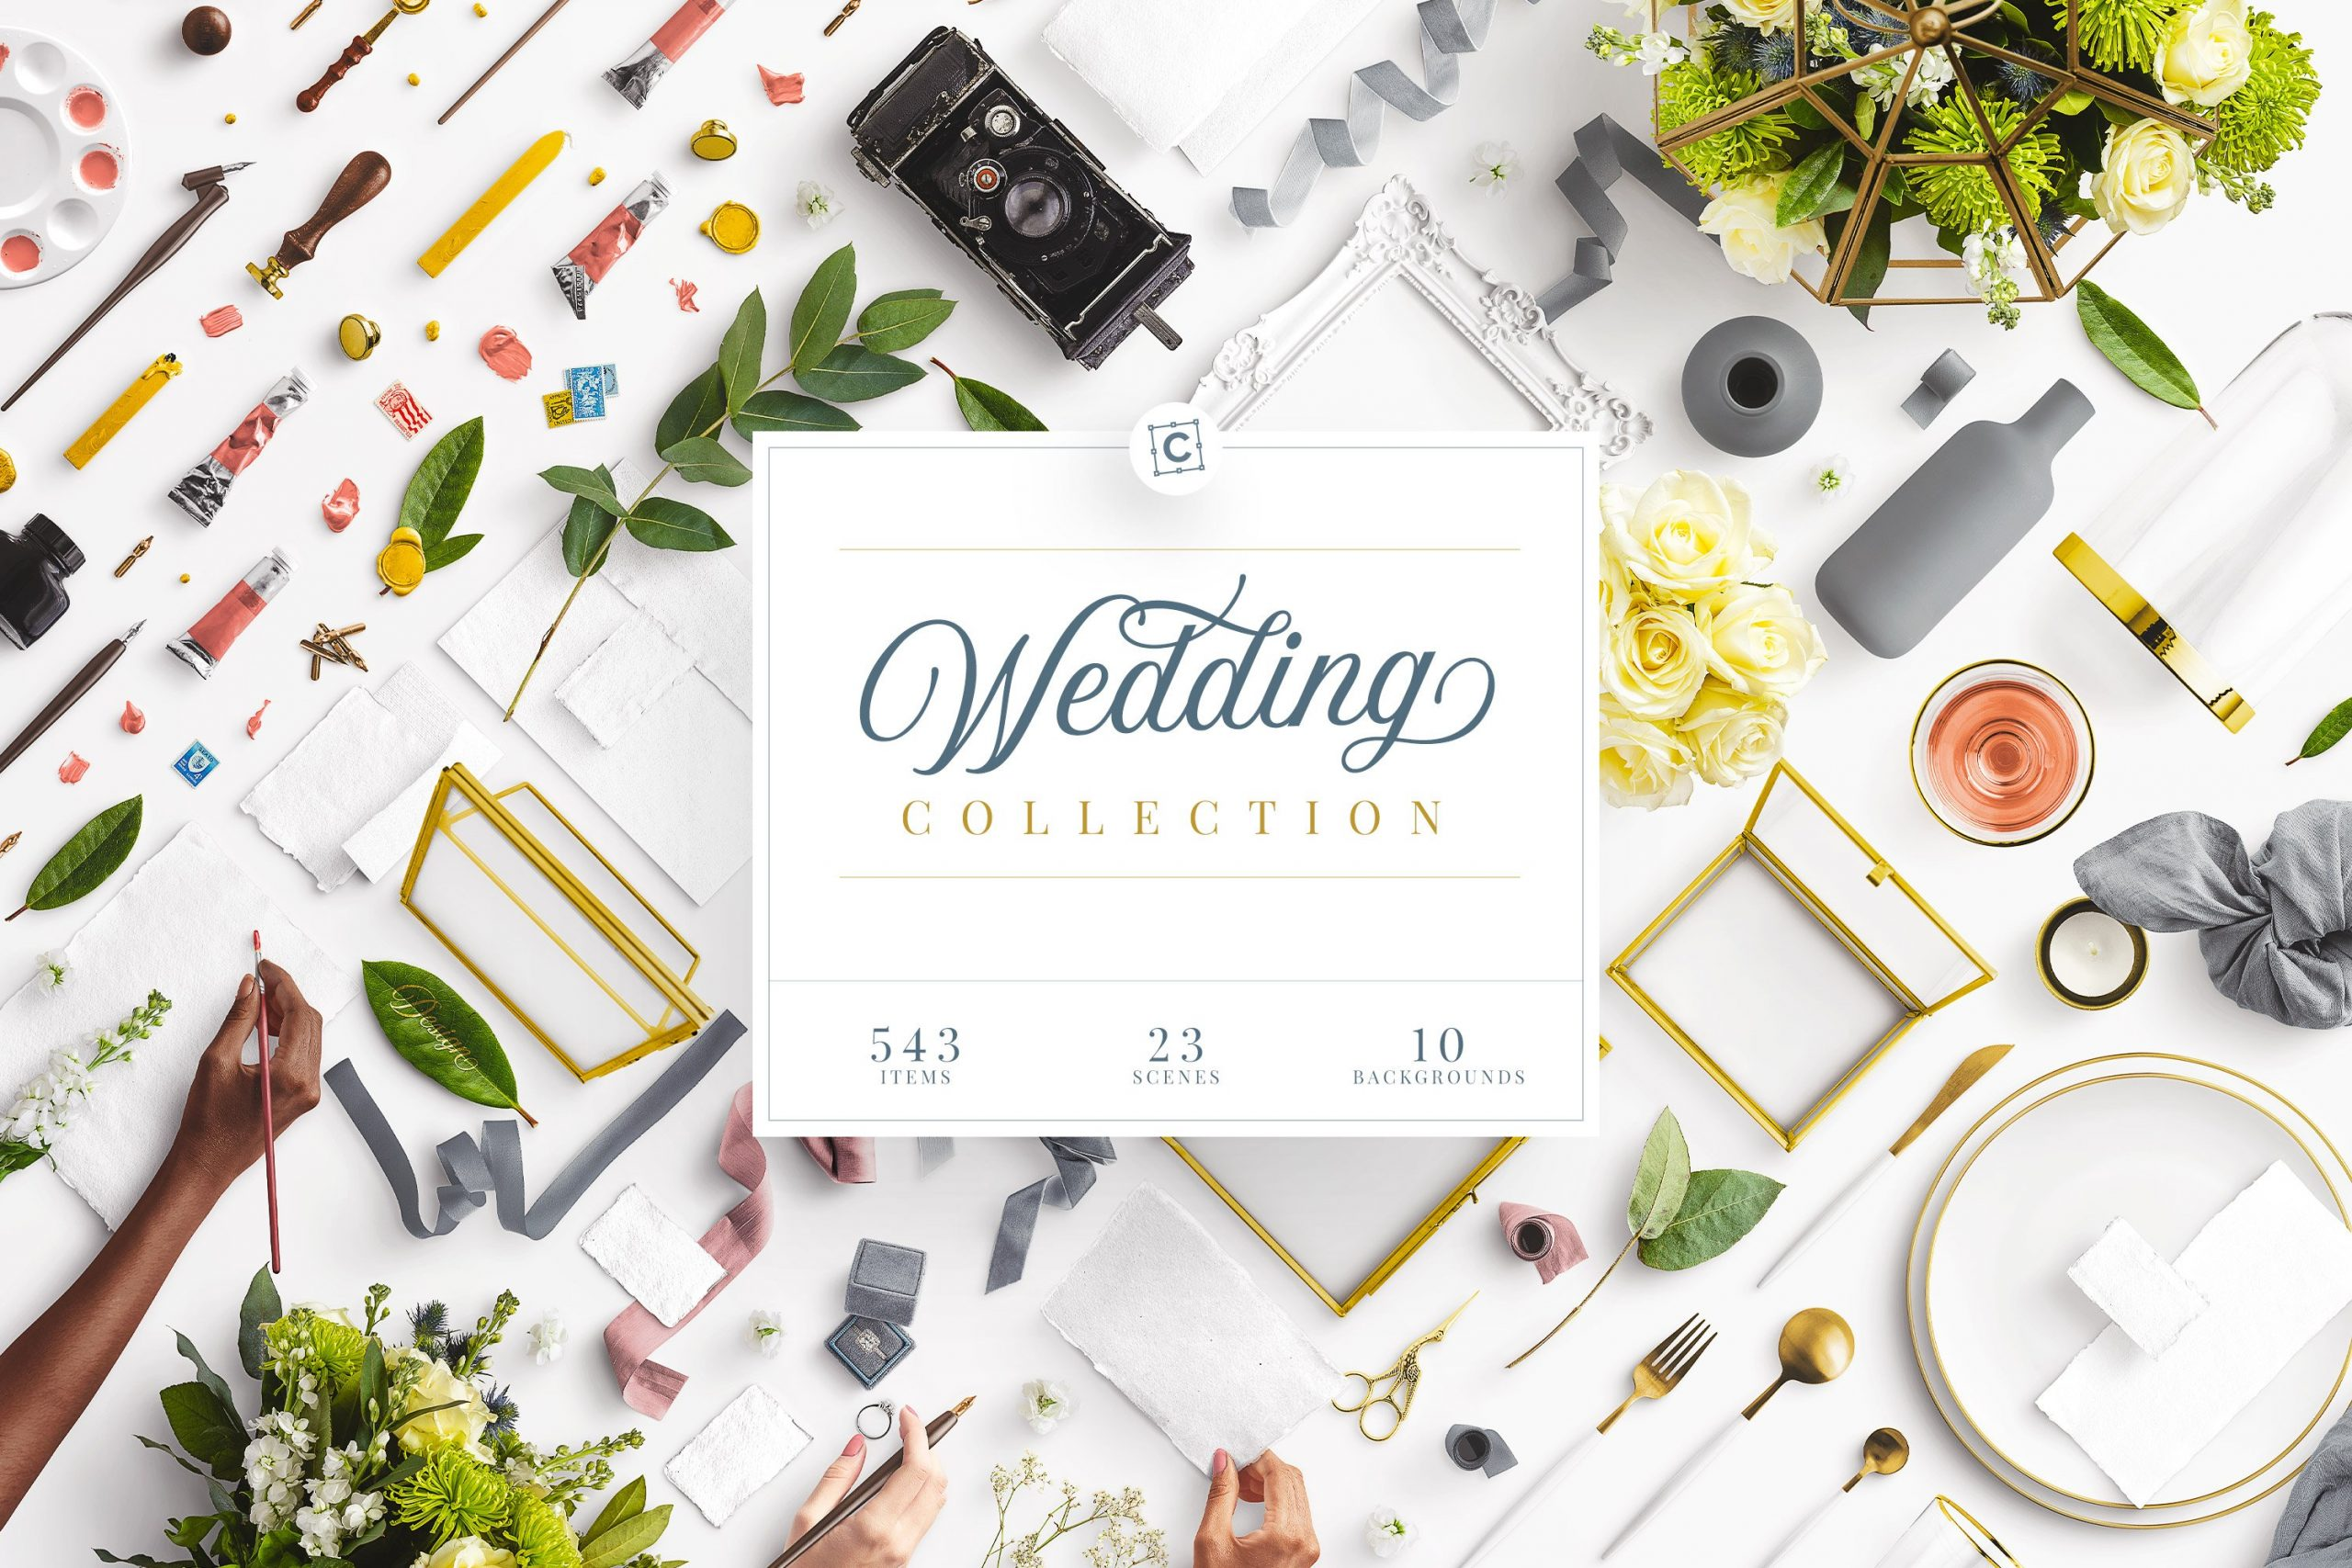 00 Wedding Collection Cover Custom Scene